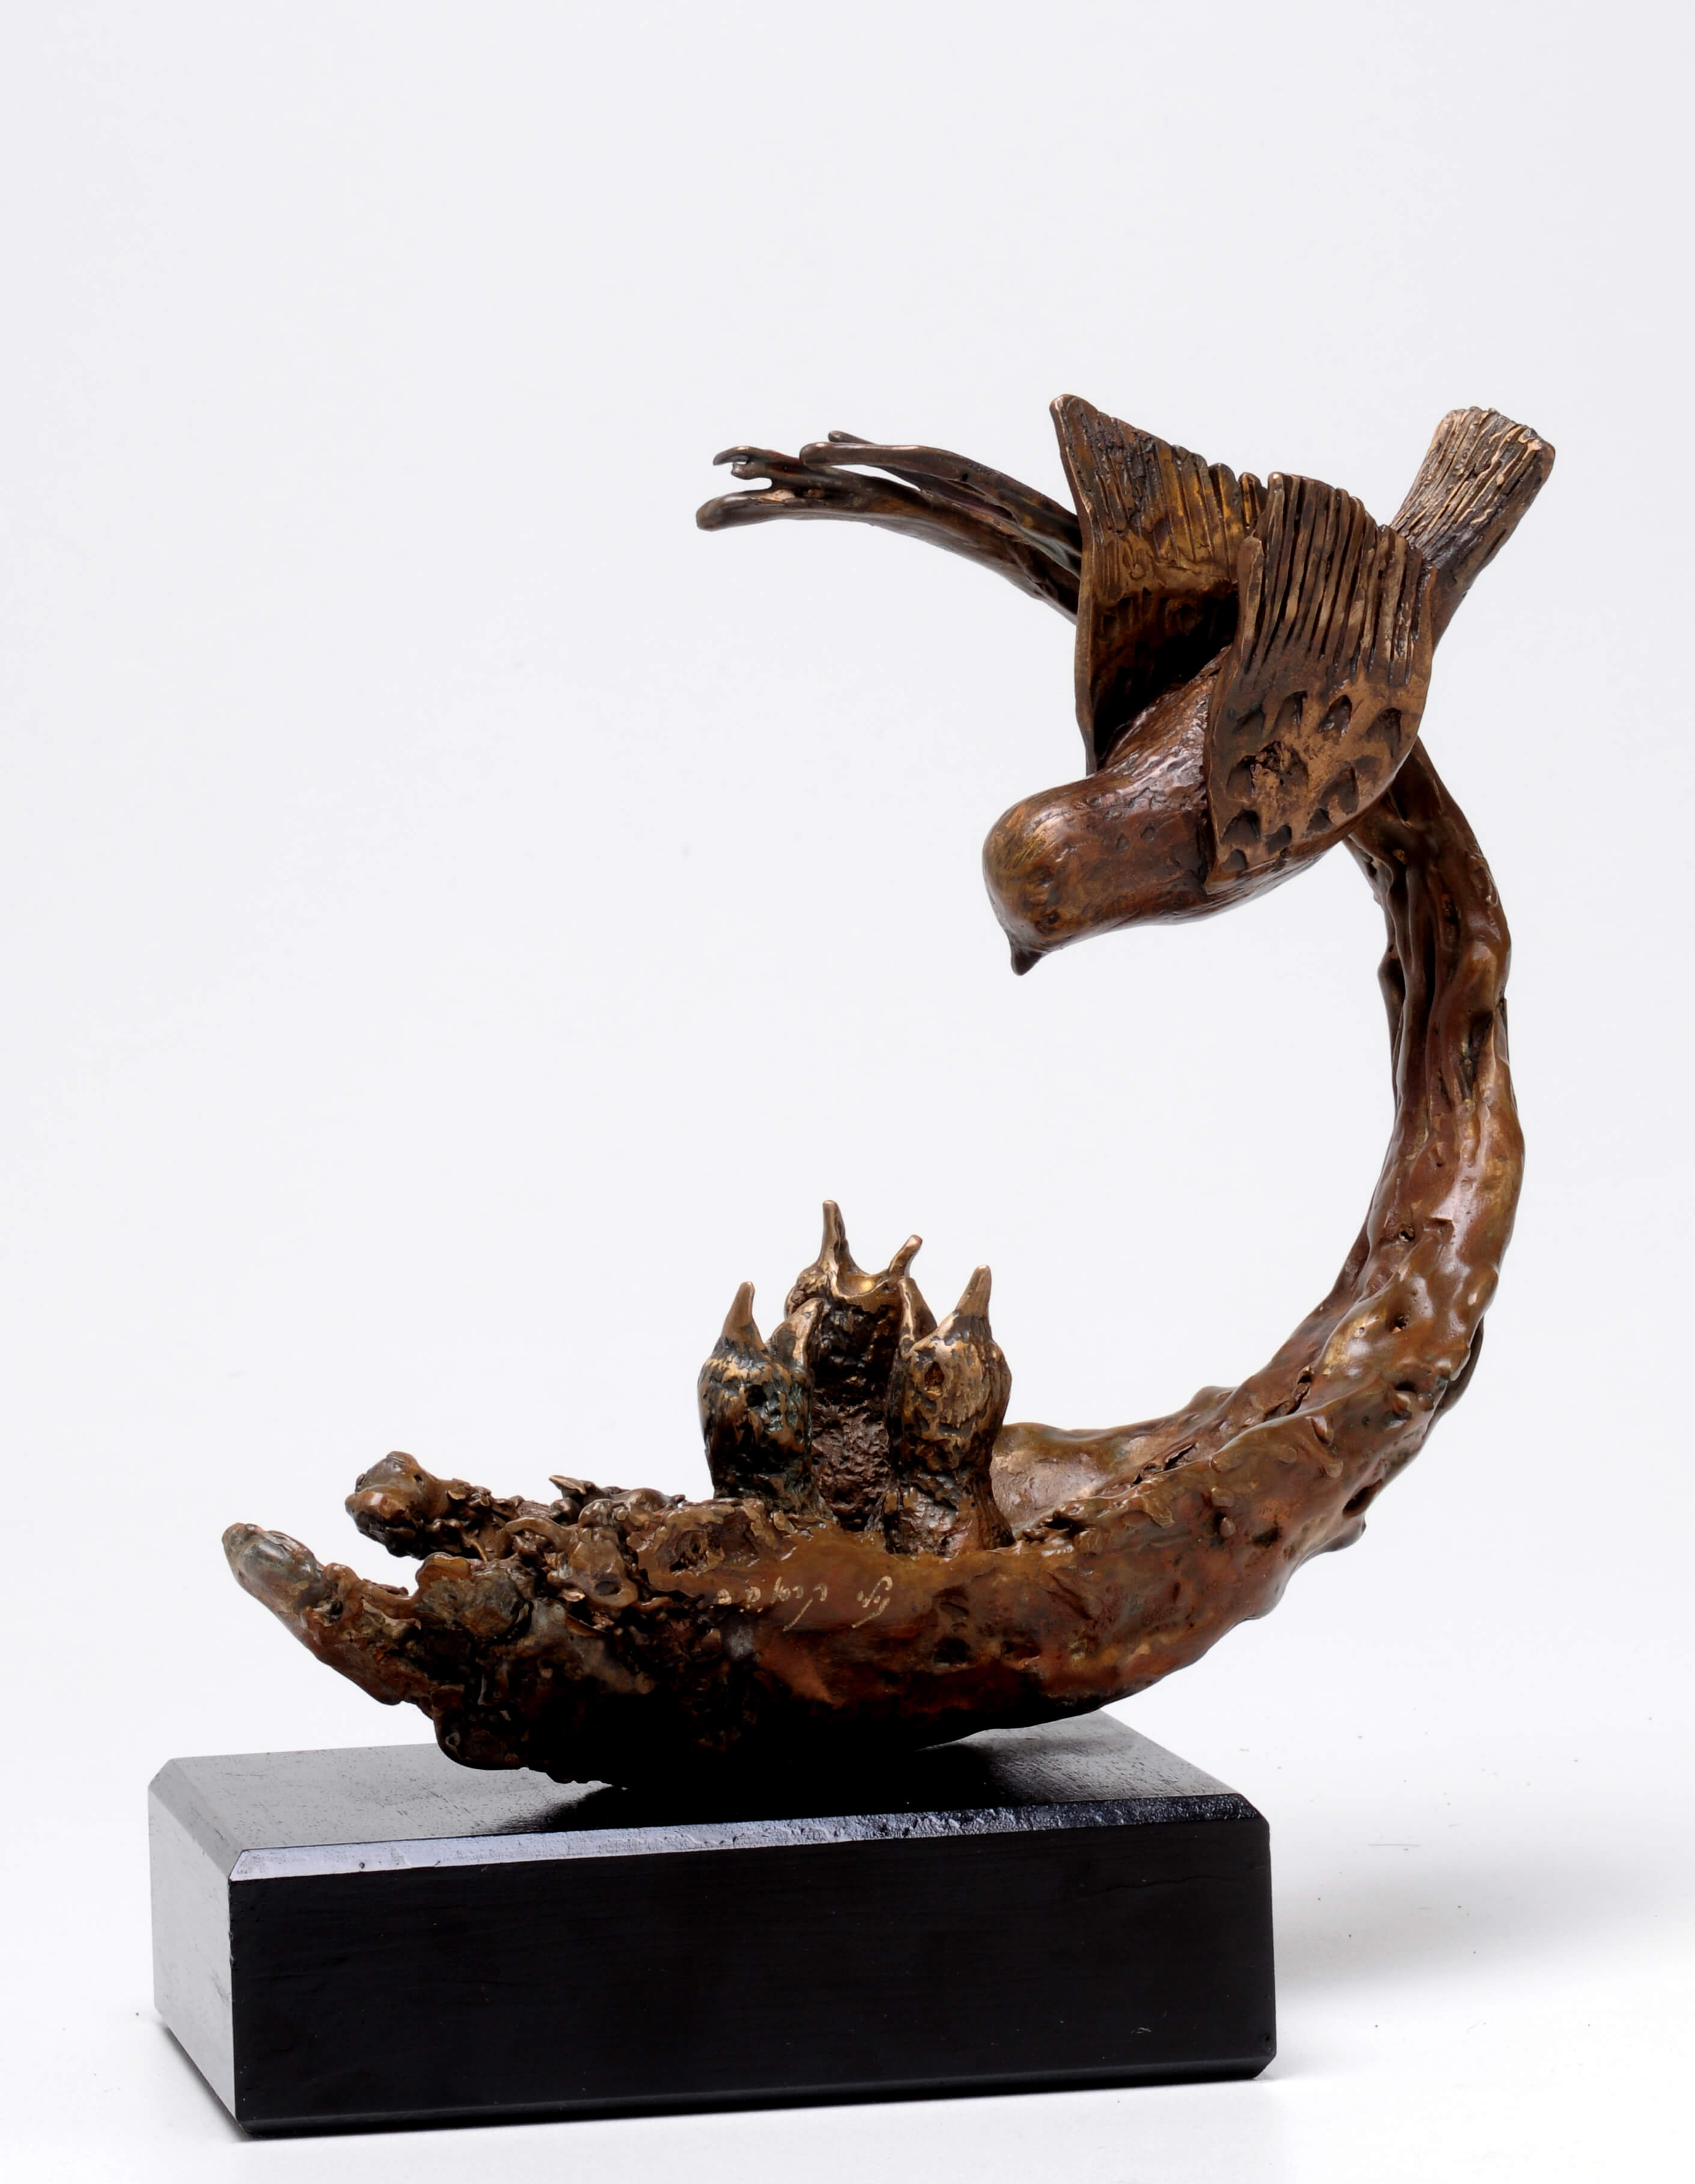 39. My Littlel Birds | Bronze | 21X13 cm.